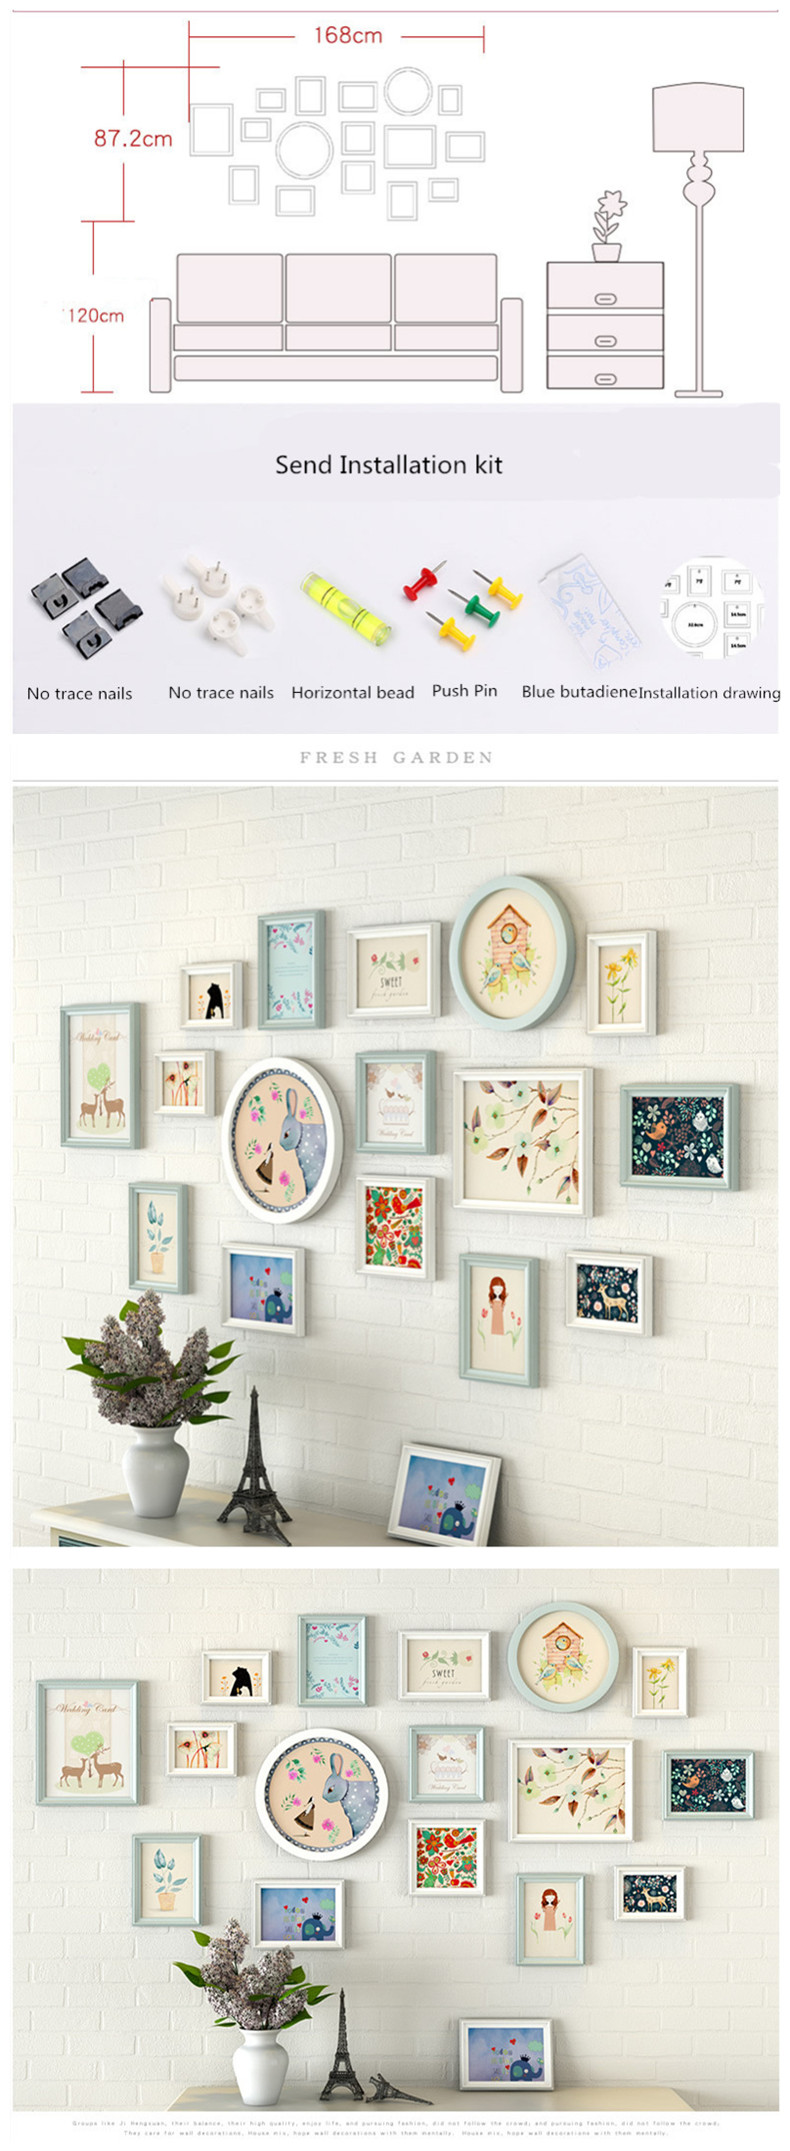 Home & Garden Modern Cute Pattern Wall Hanging Photo Frames Set 11pcs Wooden Picture Frames Suit Sofa Bed Livingroom Wall Decor Photo Frame